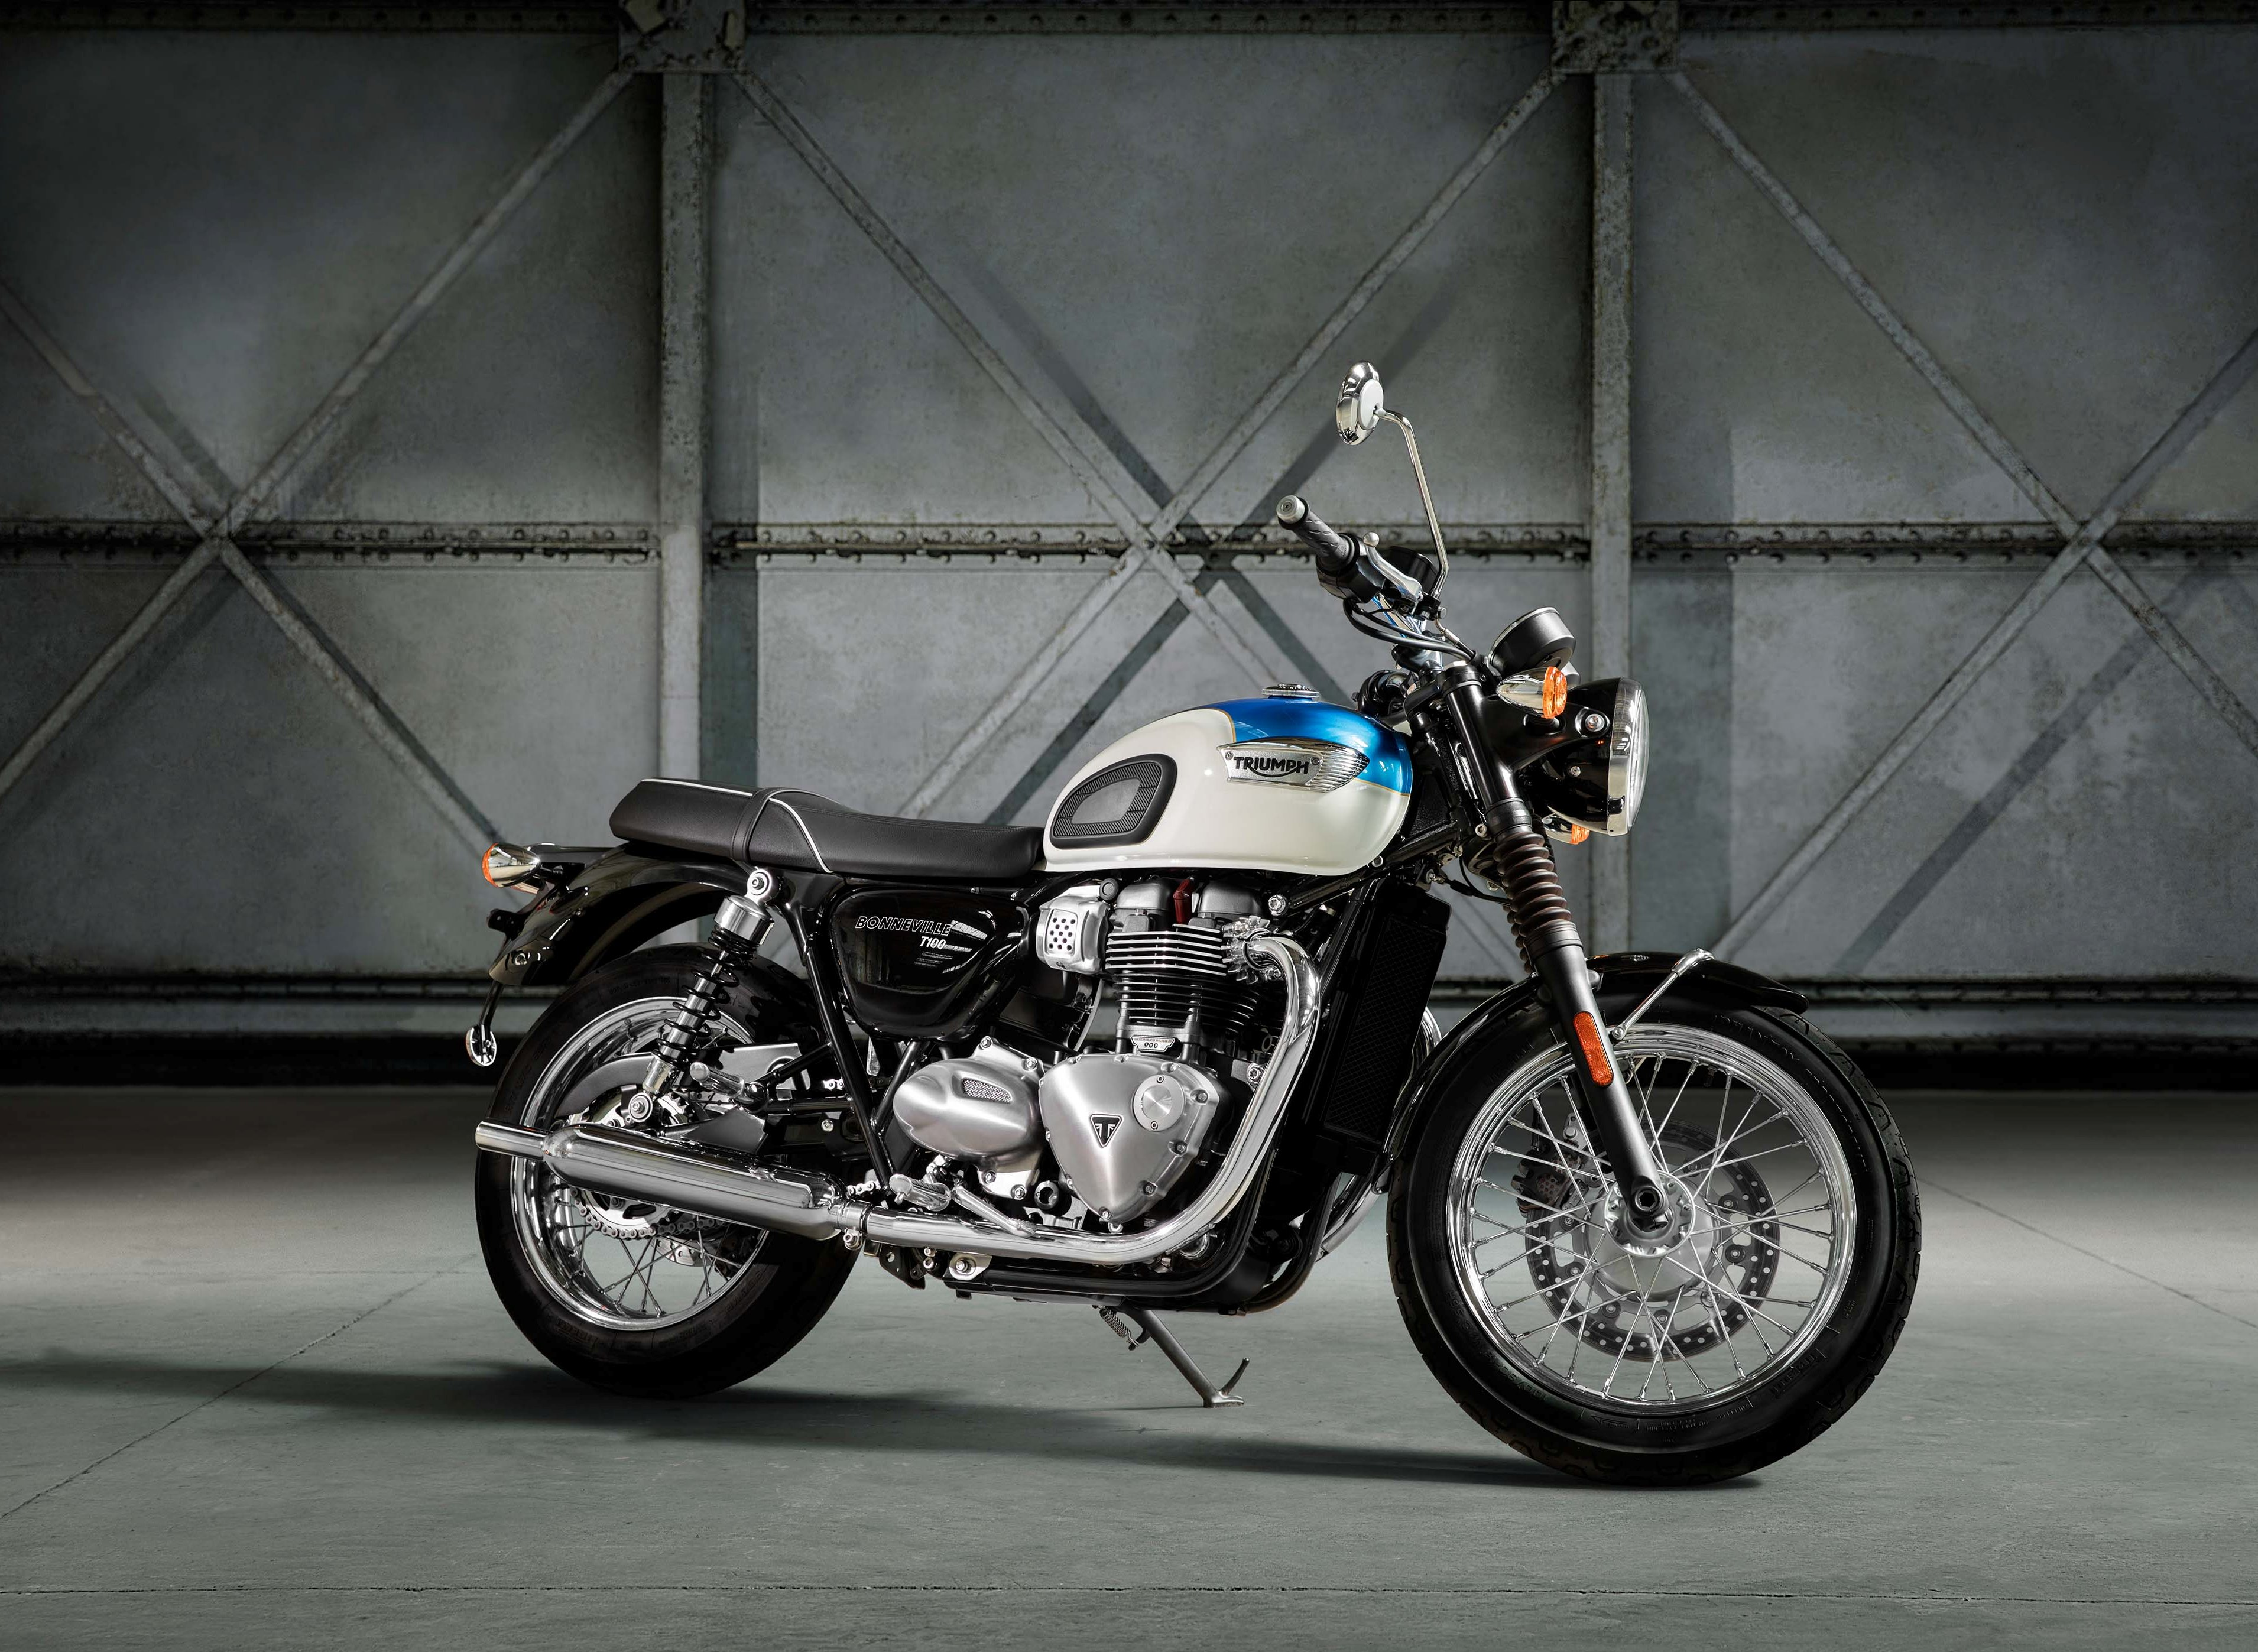 2017 triumph bonneville t100 first ride review gearopen. Black Bedroom Furniture Sets. Home Design Ideas